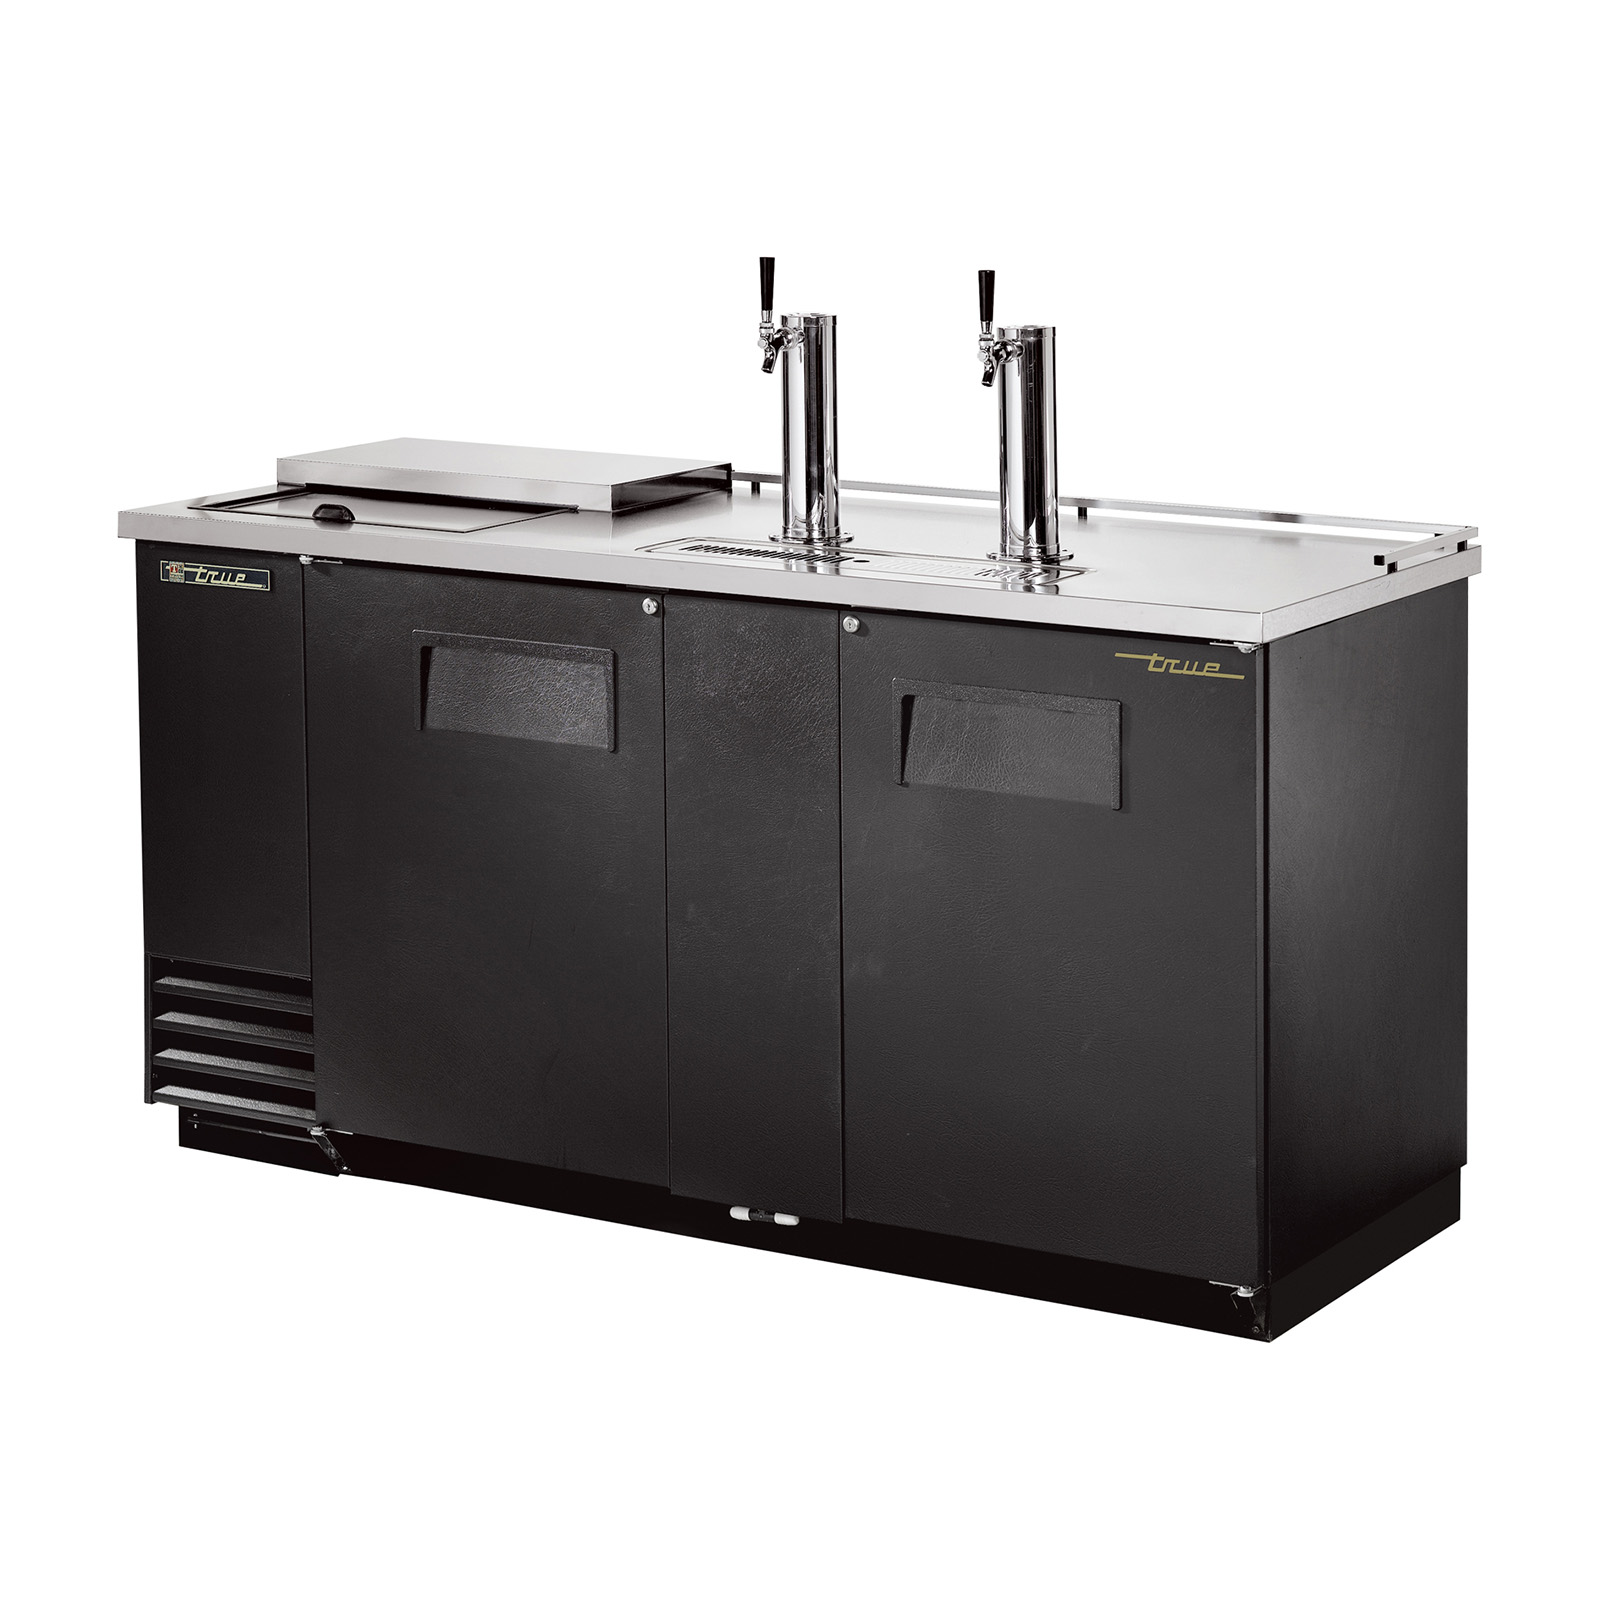 TDD-3CT True - Club Top Draft Beer Cooler (3) keg capacity